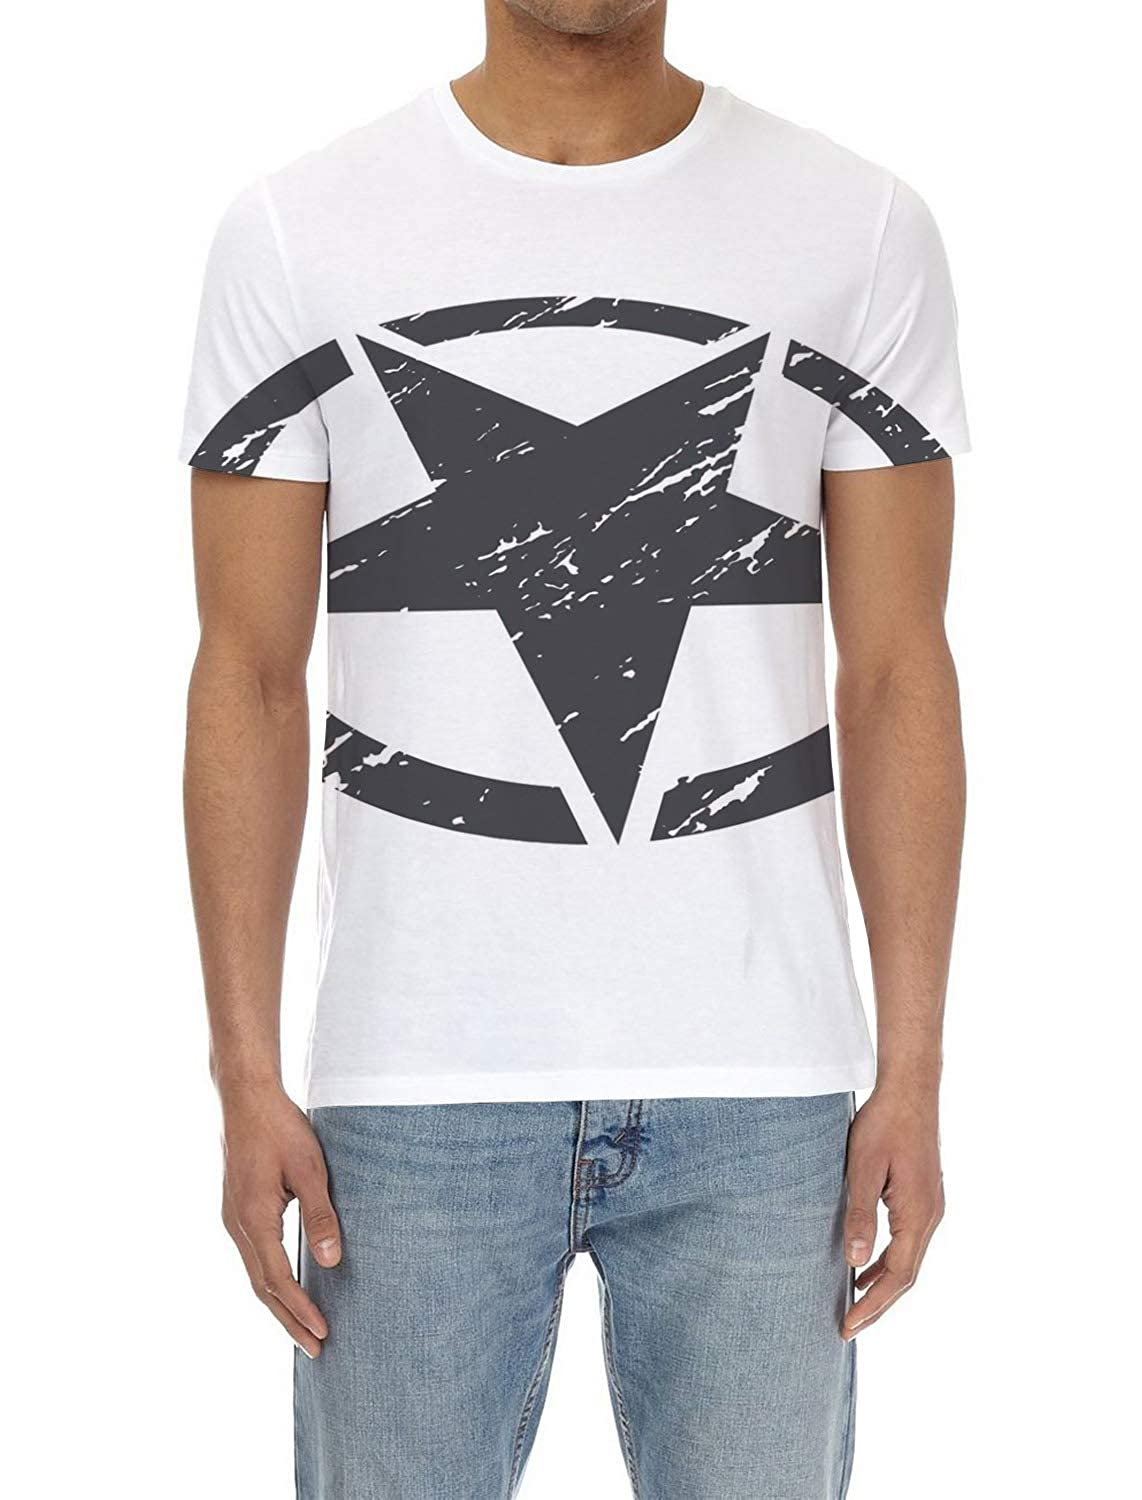 72b02e55d Amazon.com: Olivefox Men's 3D Digital Printed Personalized Short Sleeve T- Shirt Graphic Tees: Clothing